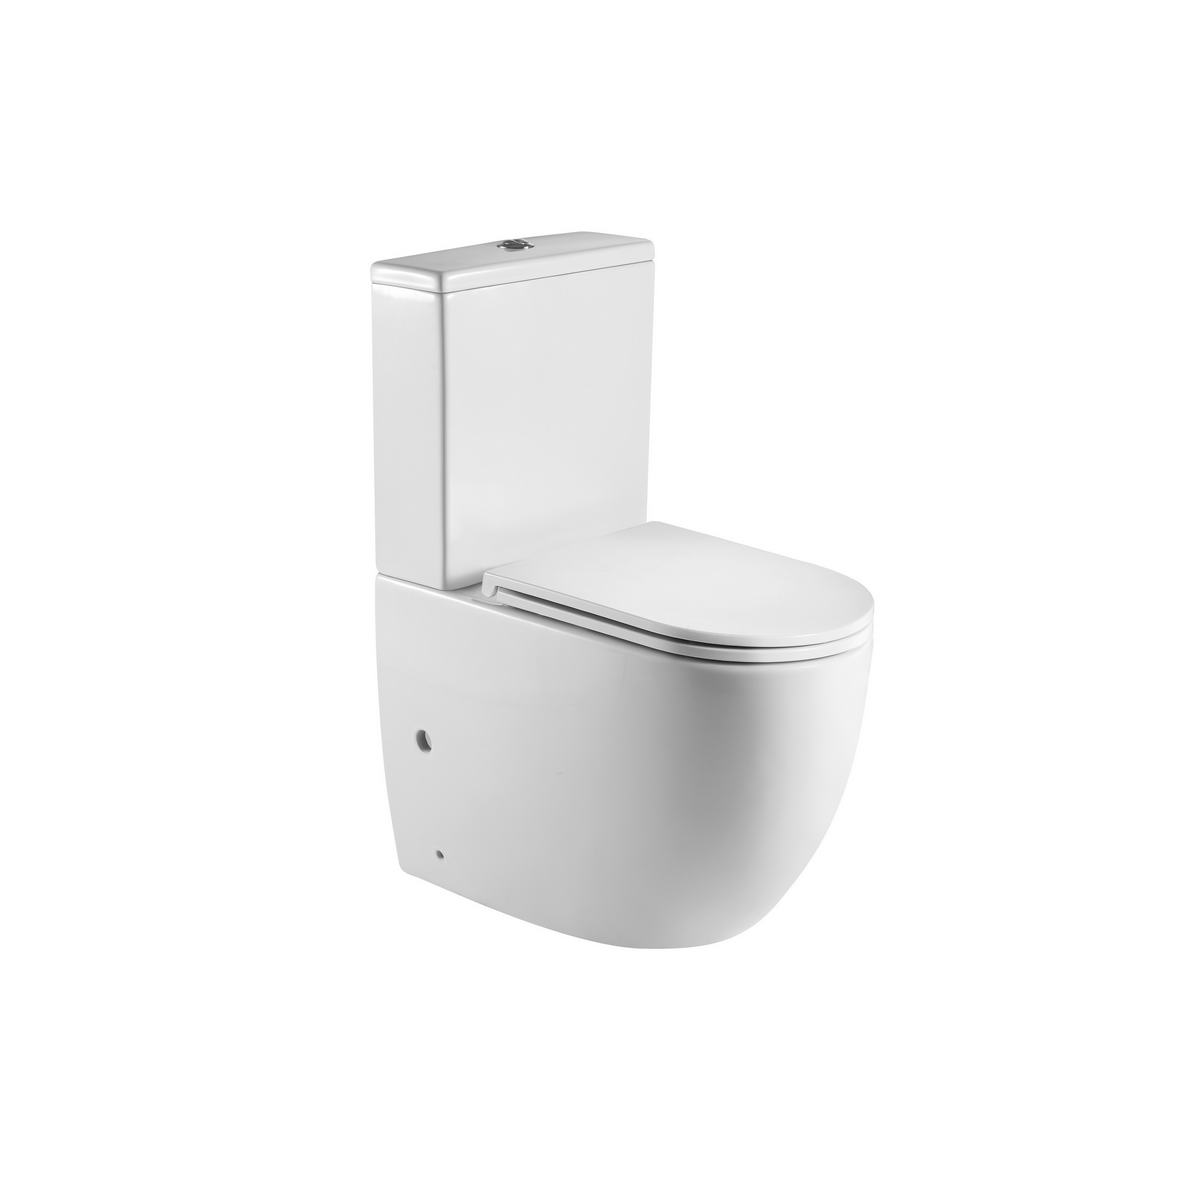 ZENA RIMLESS TOILET SUITE WITH GEBERIT INTERNALS WITH SOFT CLOSING SEAT